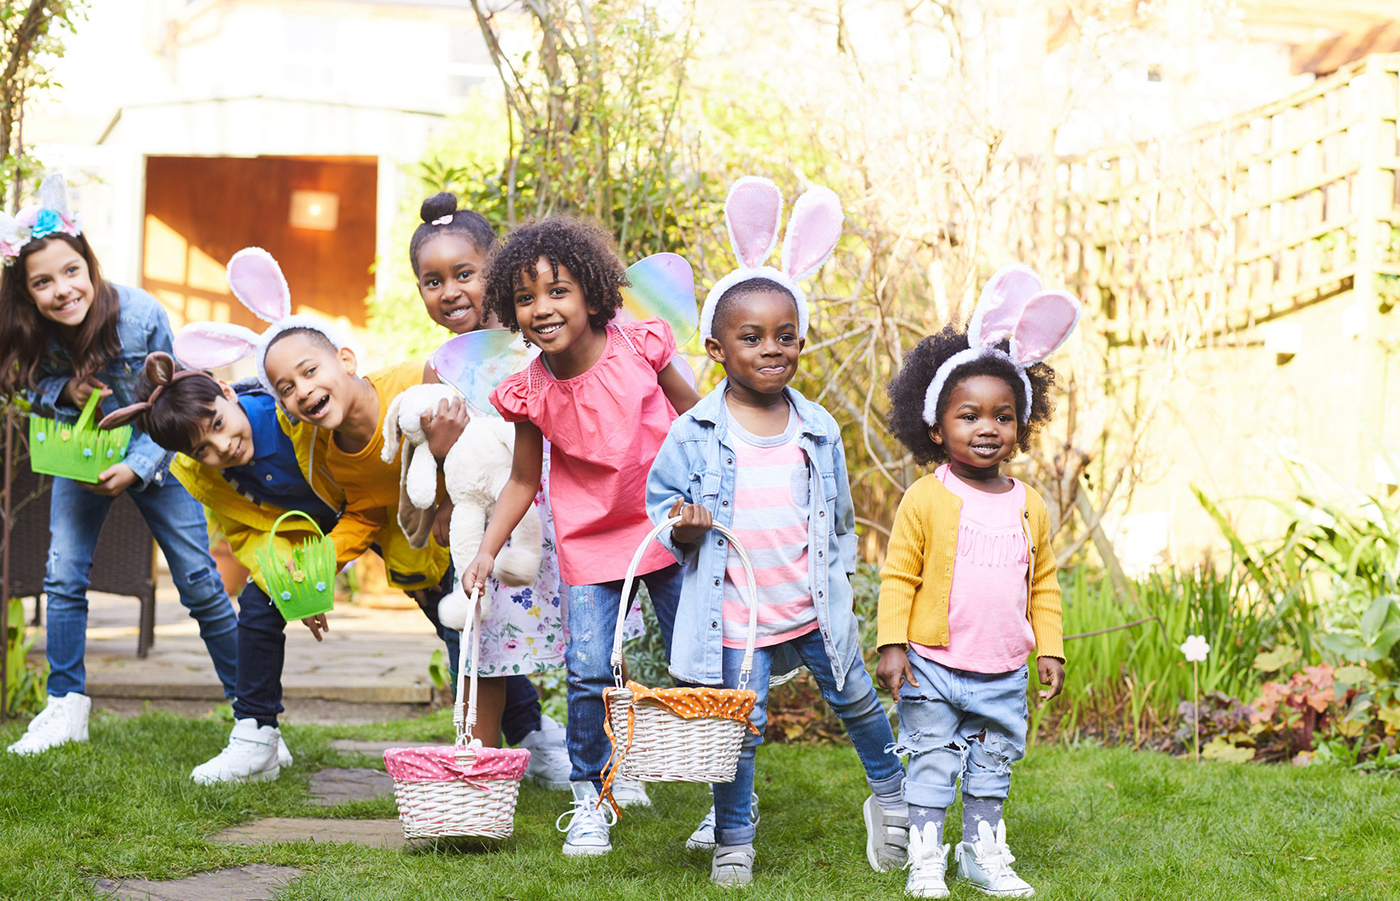 Easter Events Hop This Way For Kids & Families